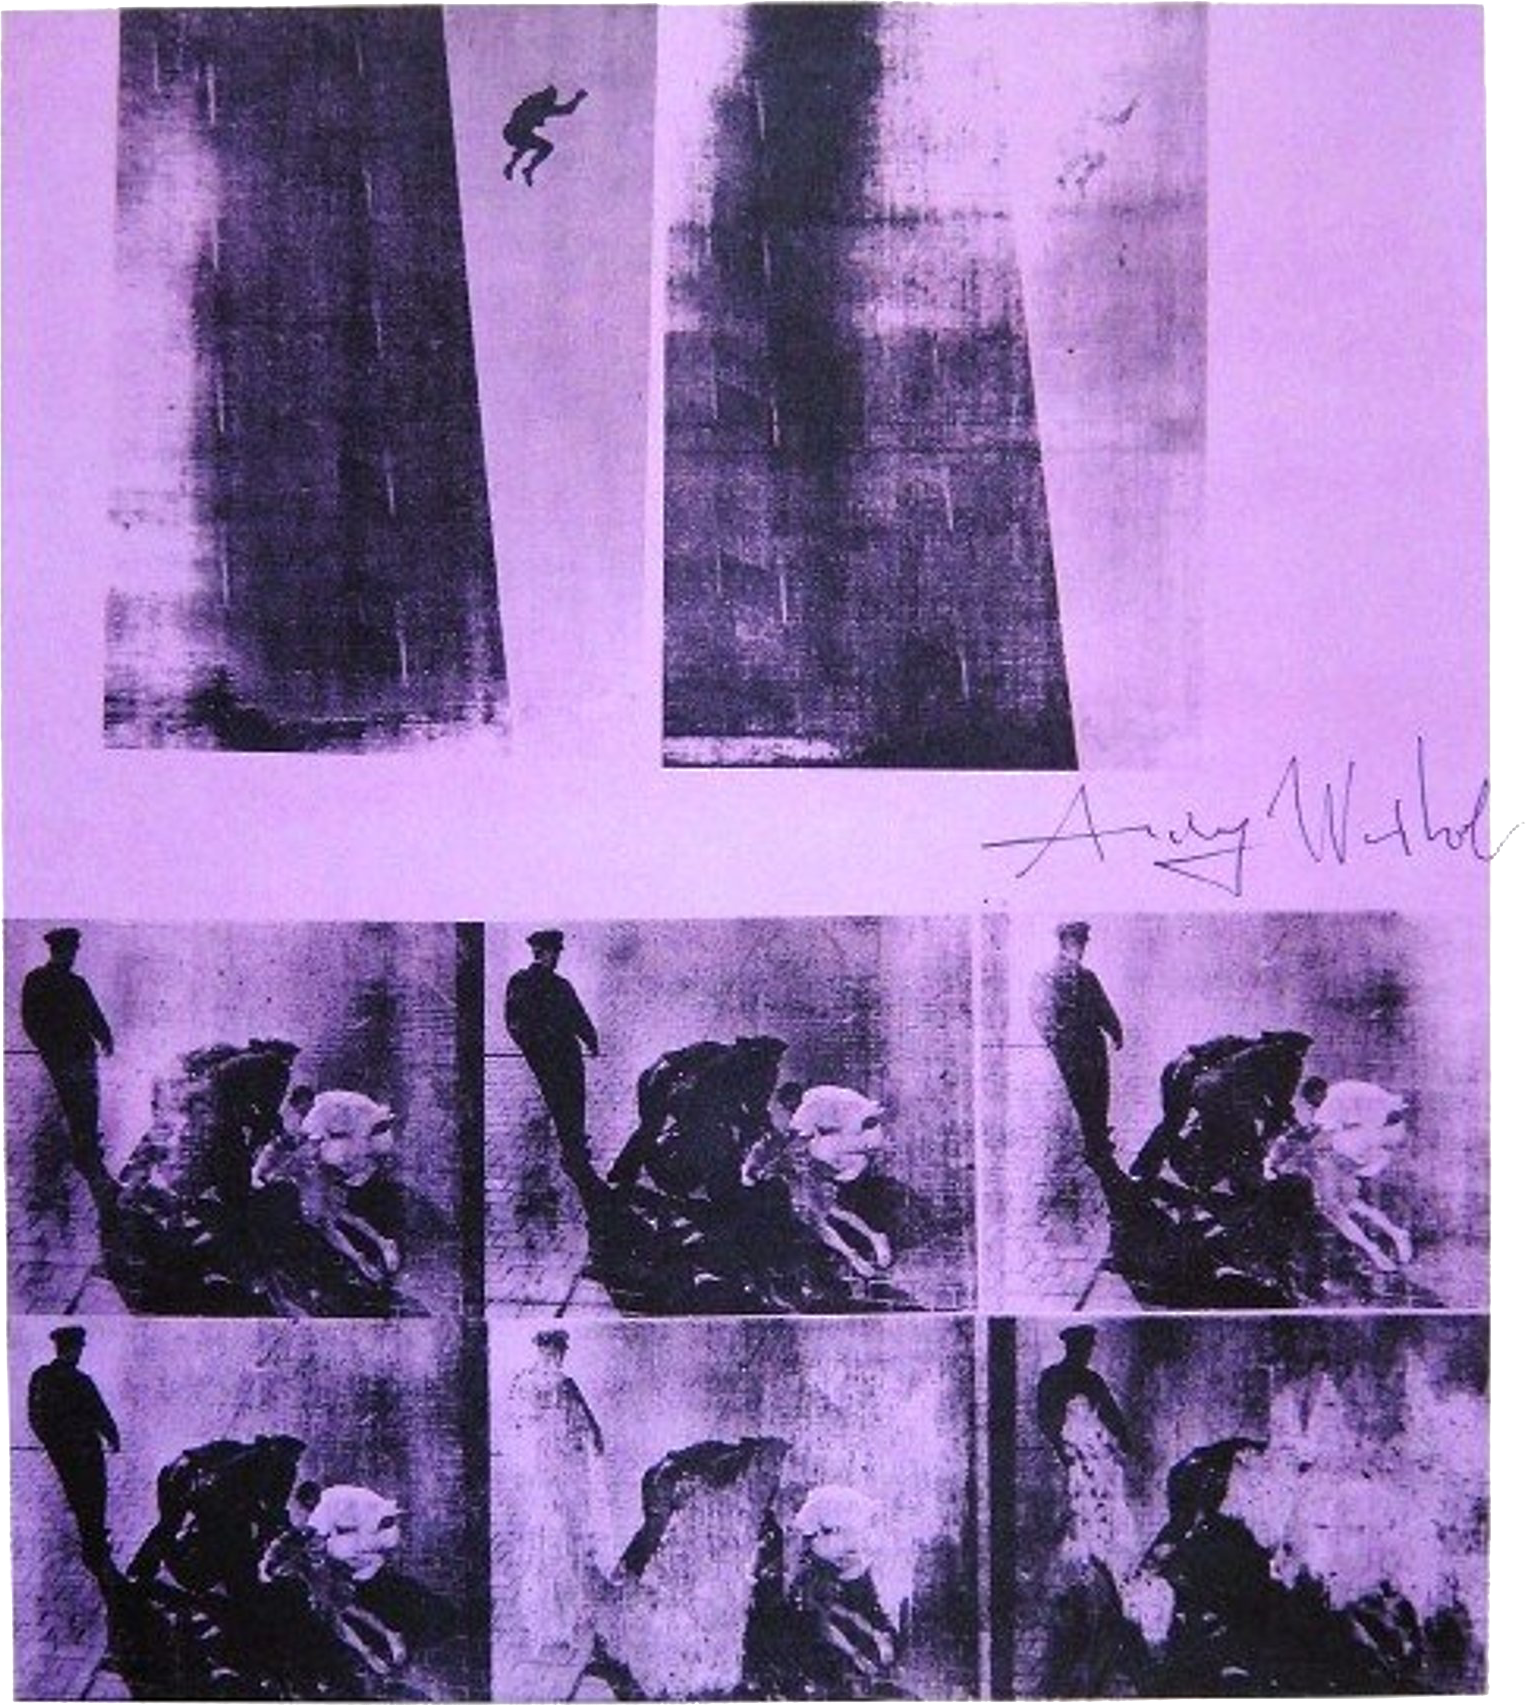 Andy Warhol's 1963 screen-print,  Suicide